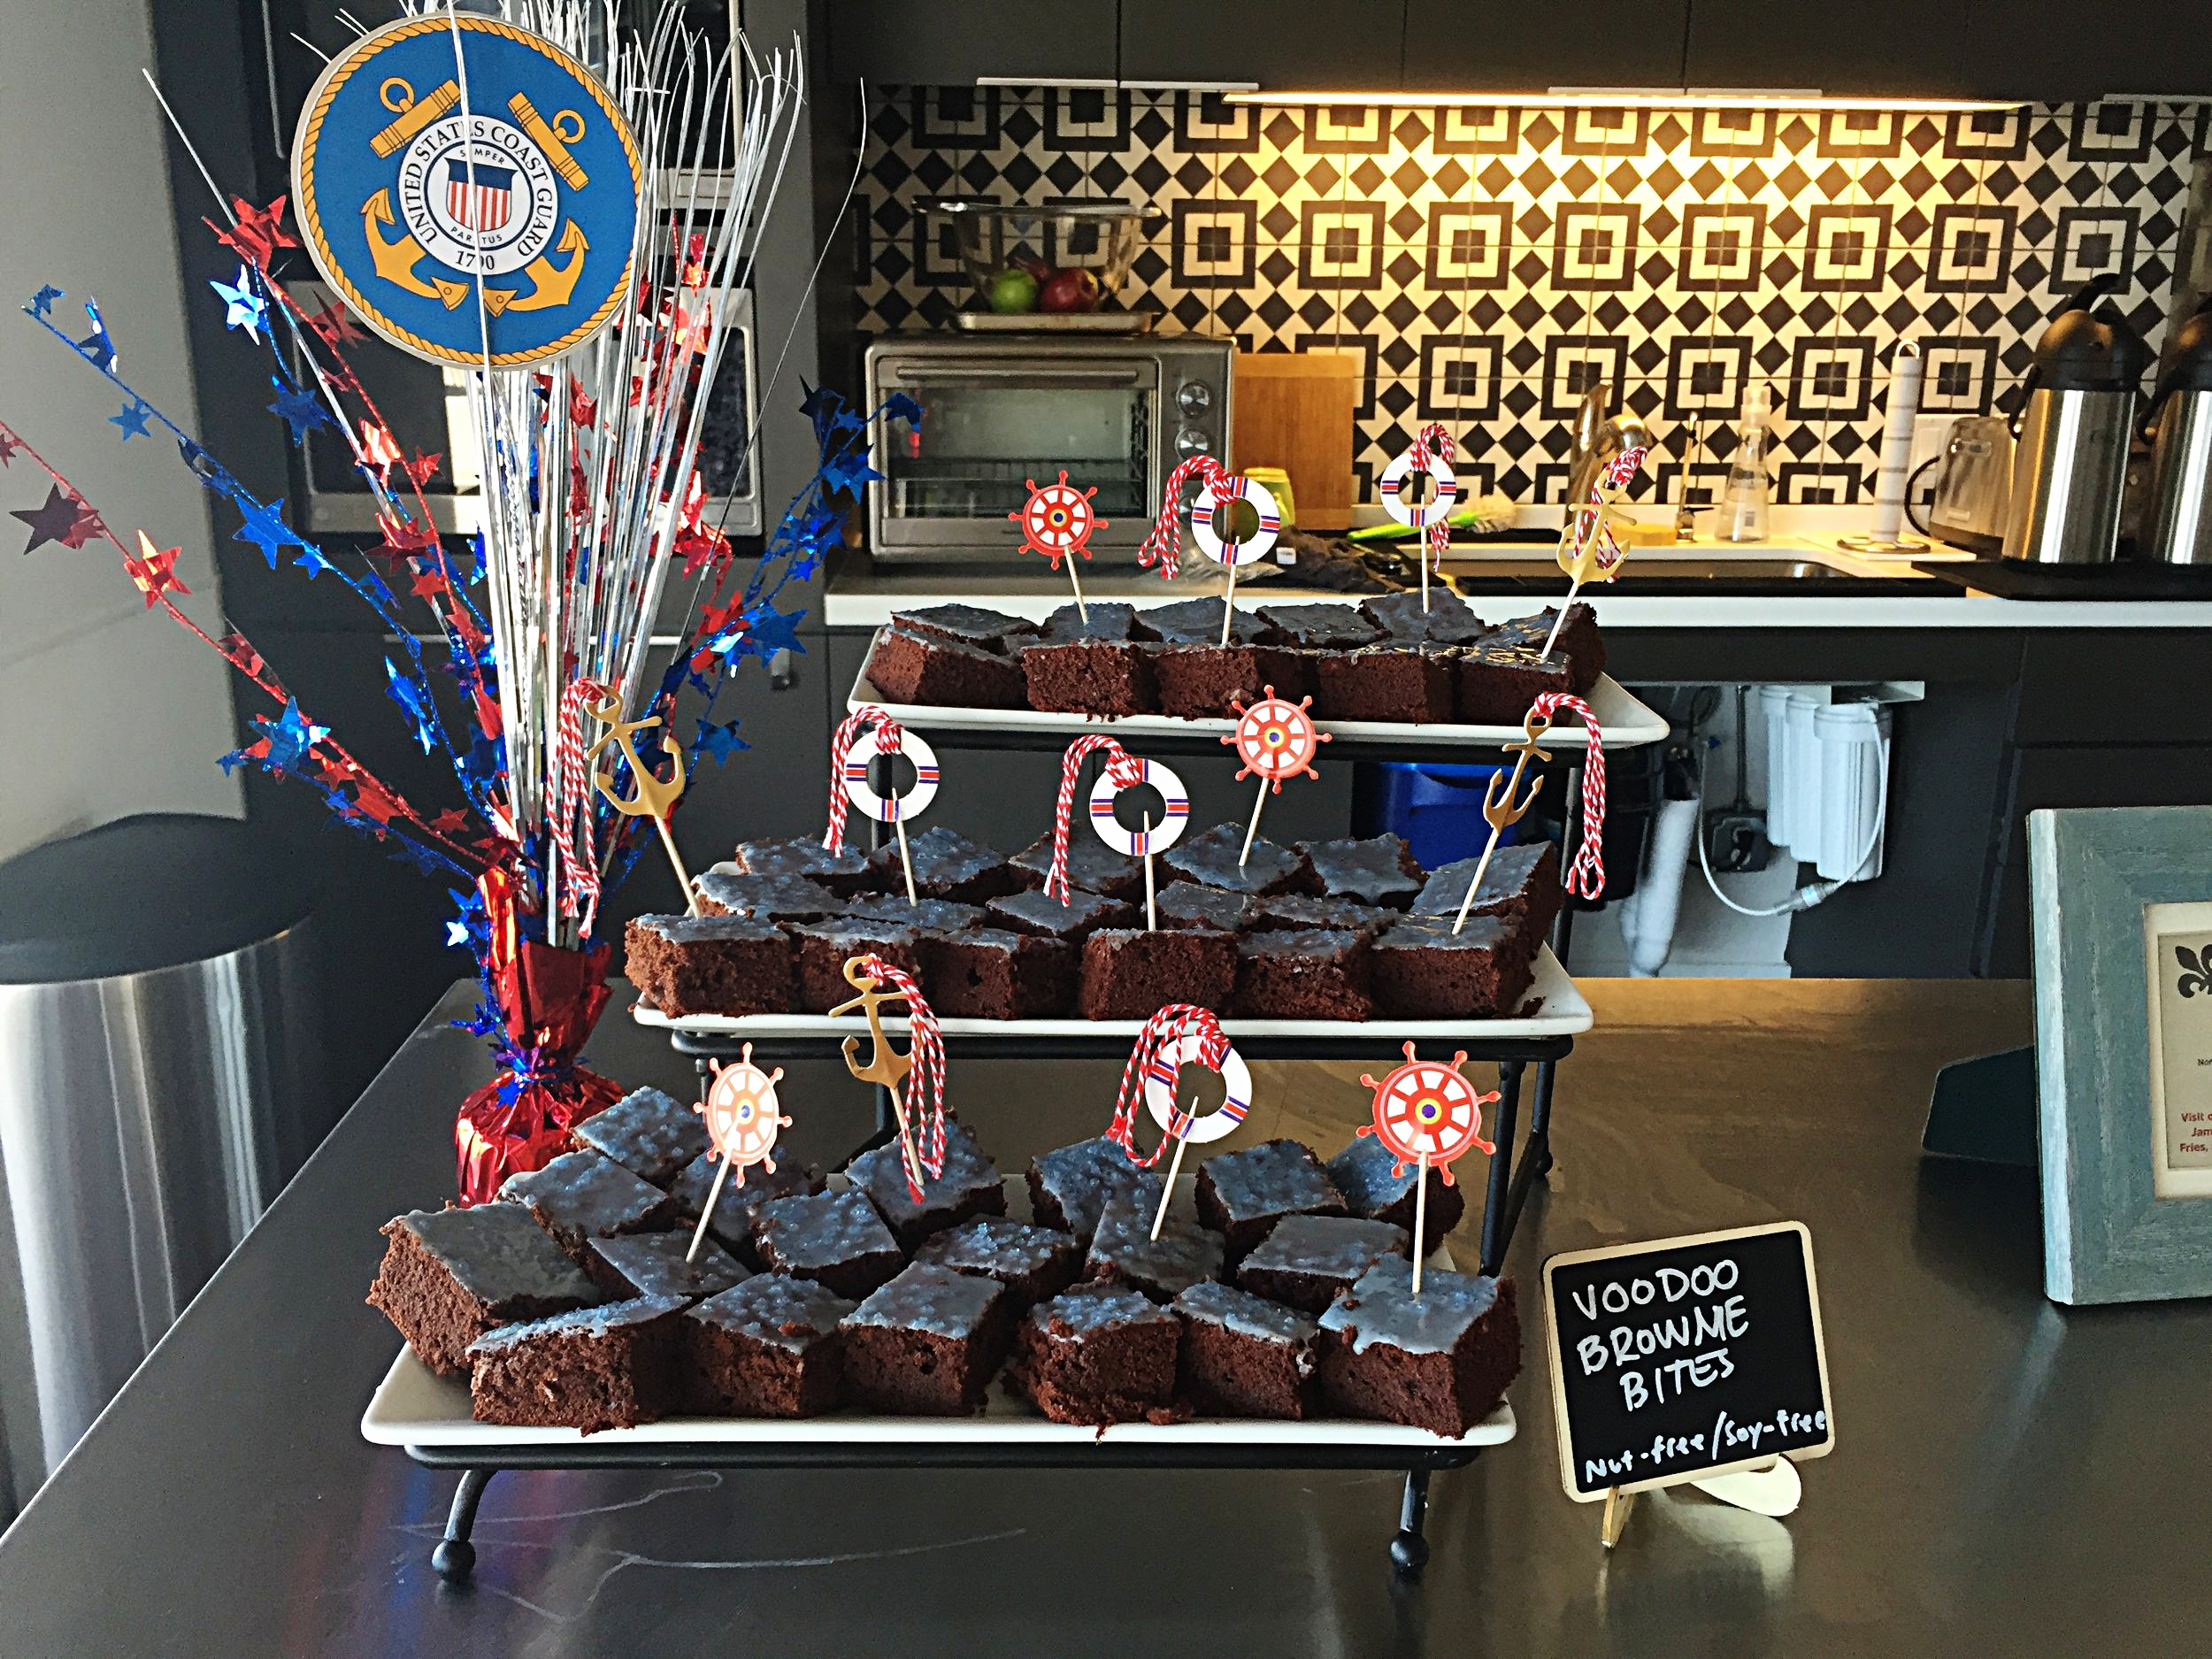 Custom brownies created for PETA were the inspiration behind our 4th of July Voodoo Brownies!